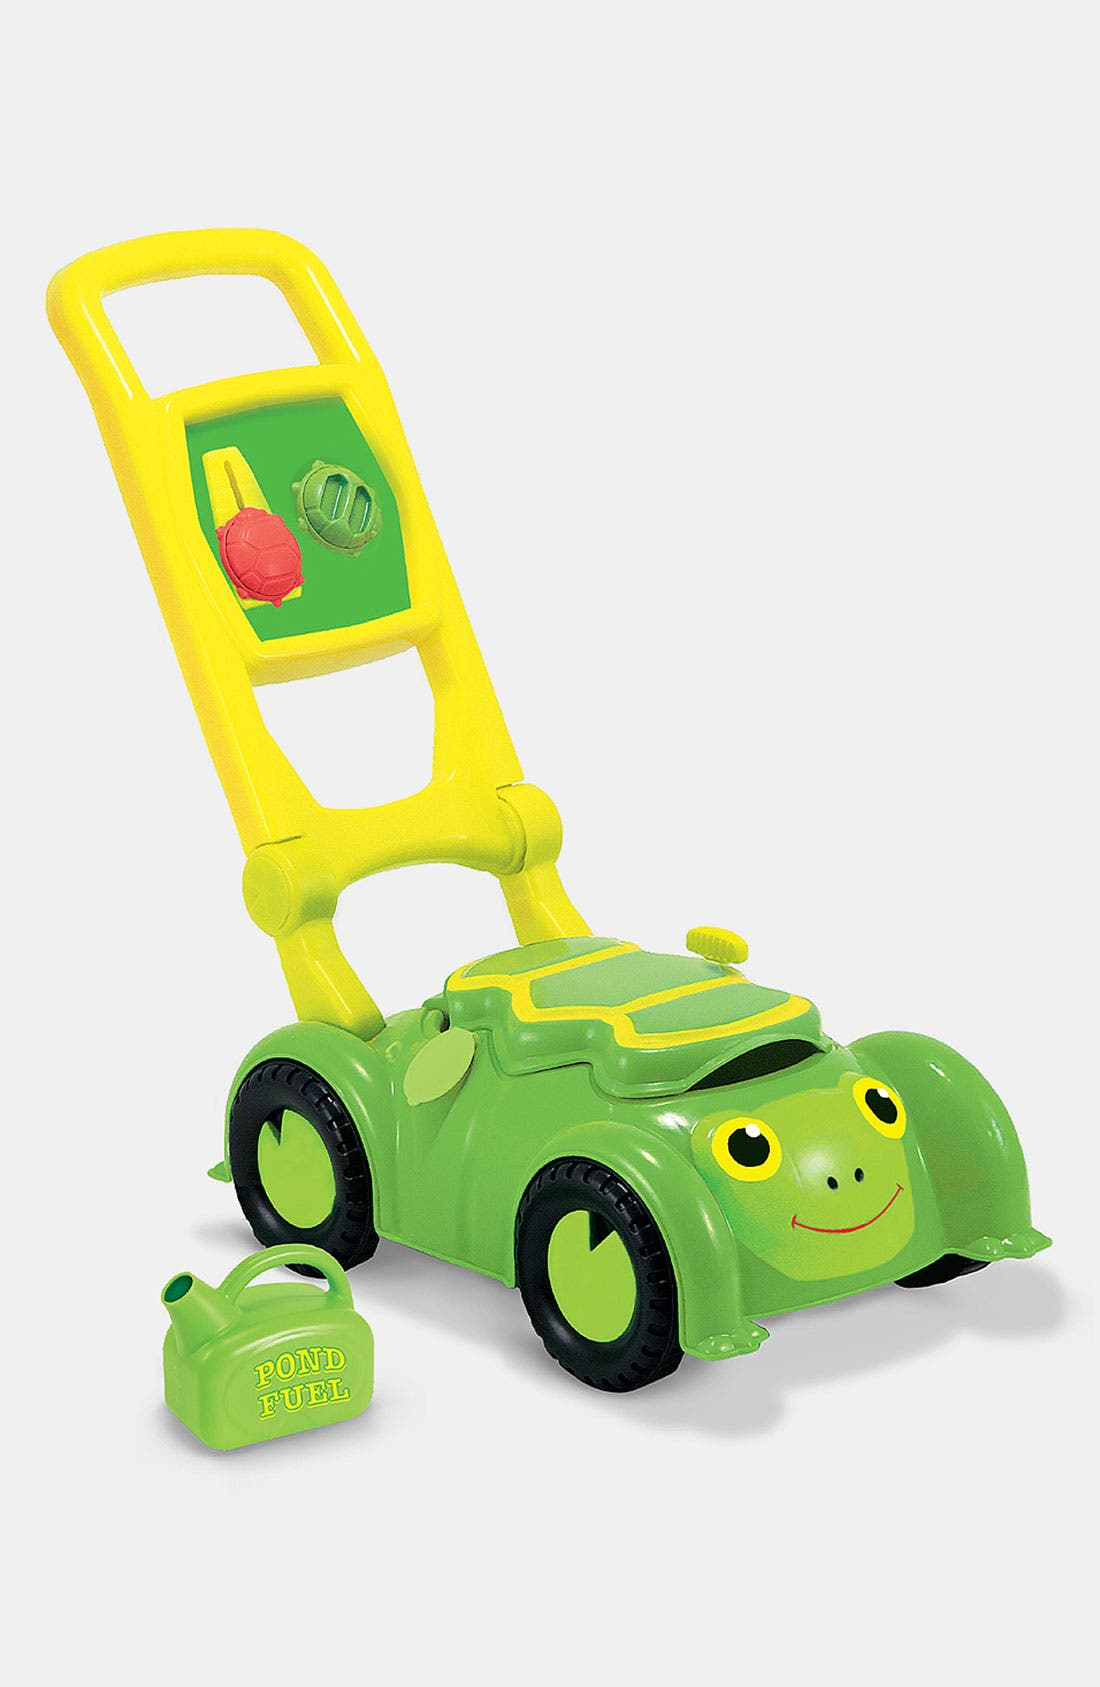 'Tootle Turtle' Lawn Mower Toy,                             Main thumbnail 1, color,                             960